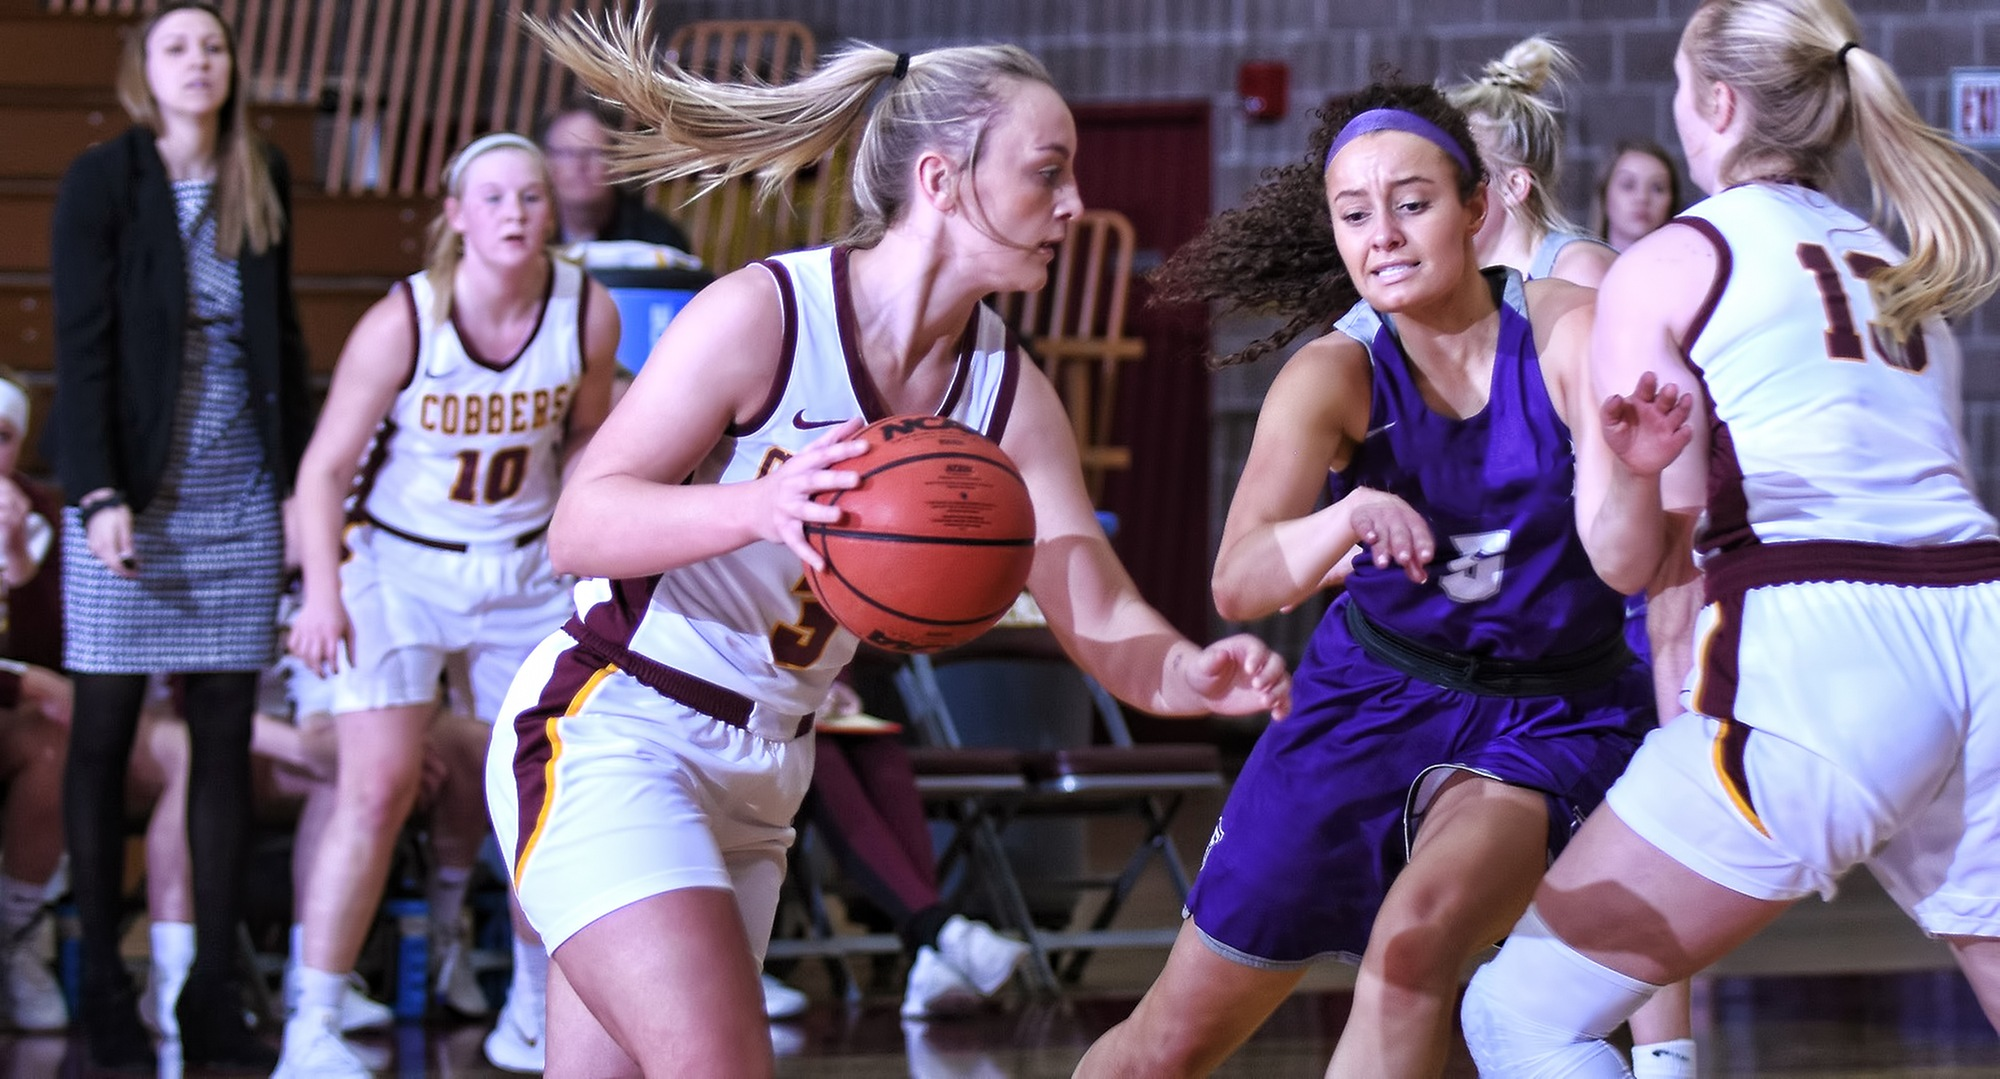 Sophomore Autumn Thompson had a career-high 23 points in the Cobbers' game at St. Catherine.